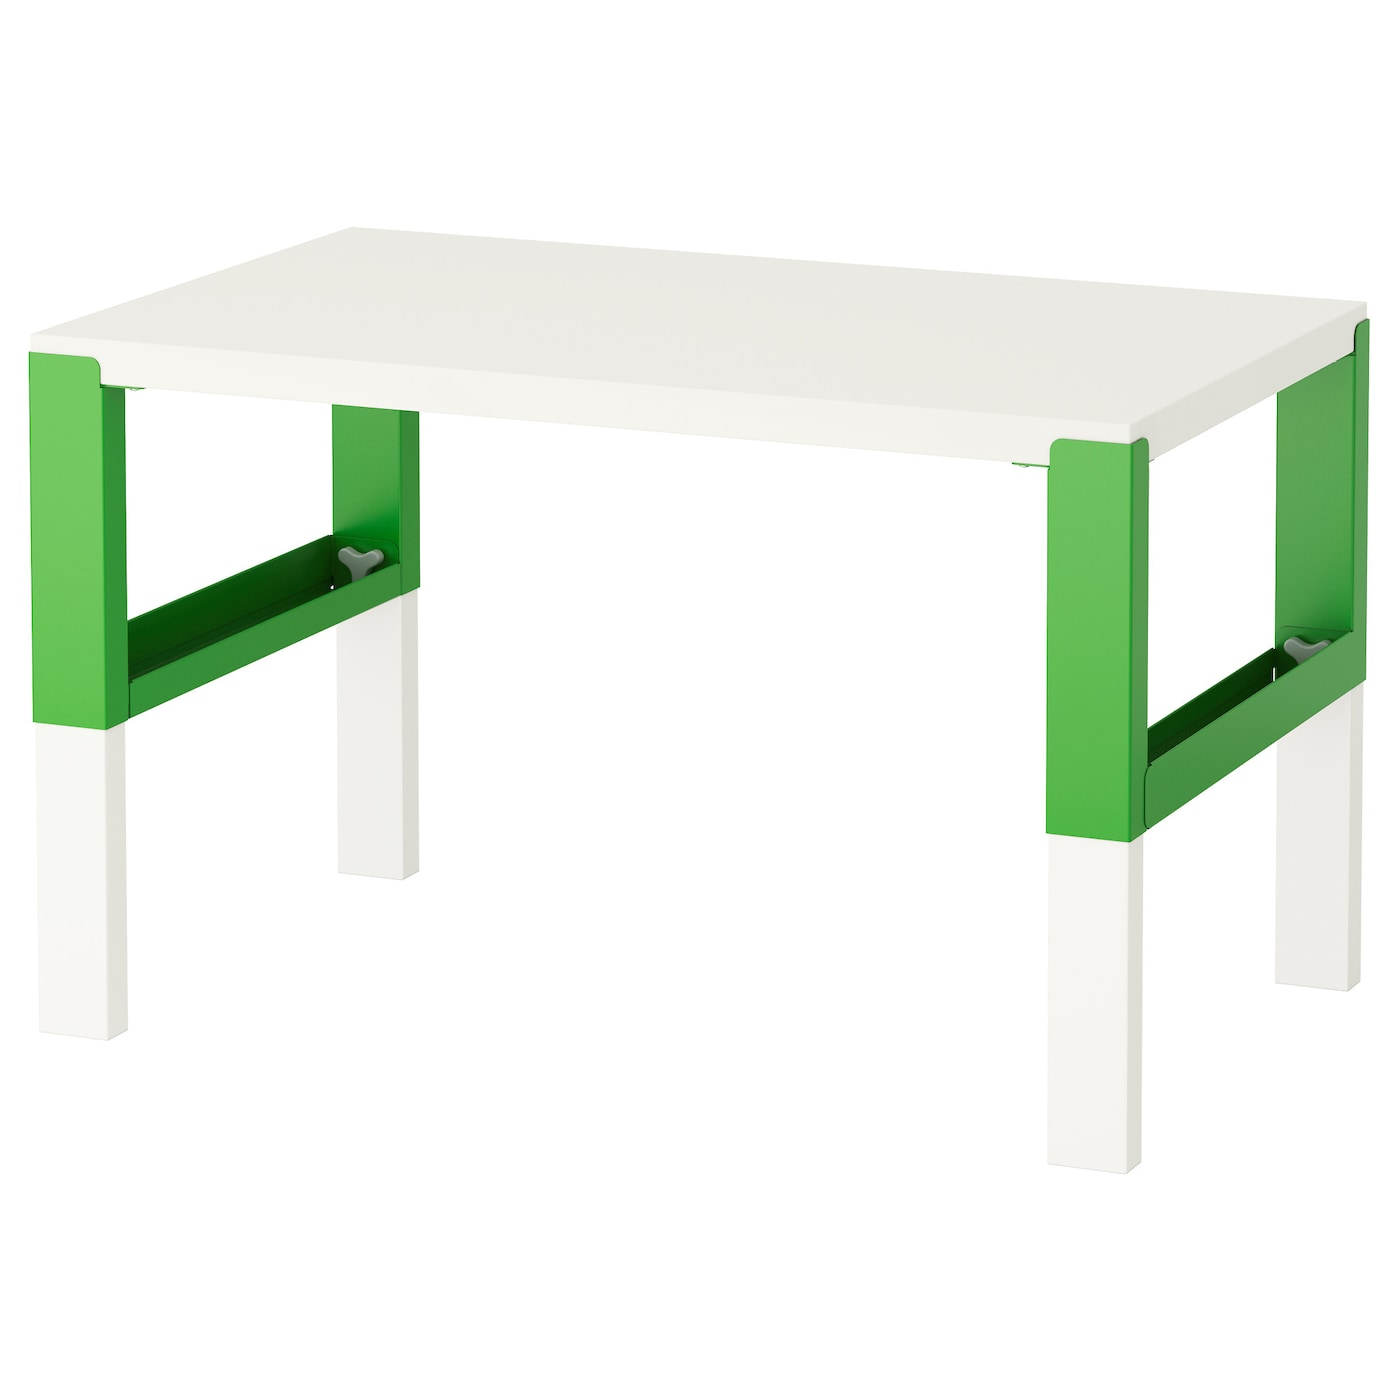 desks chairs. IKEA PÅHL Desk This Is Designed To Grow With Your Child, Thanks The Desks Chairs